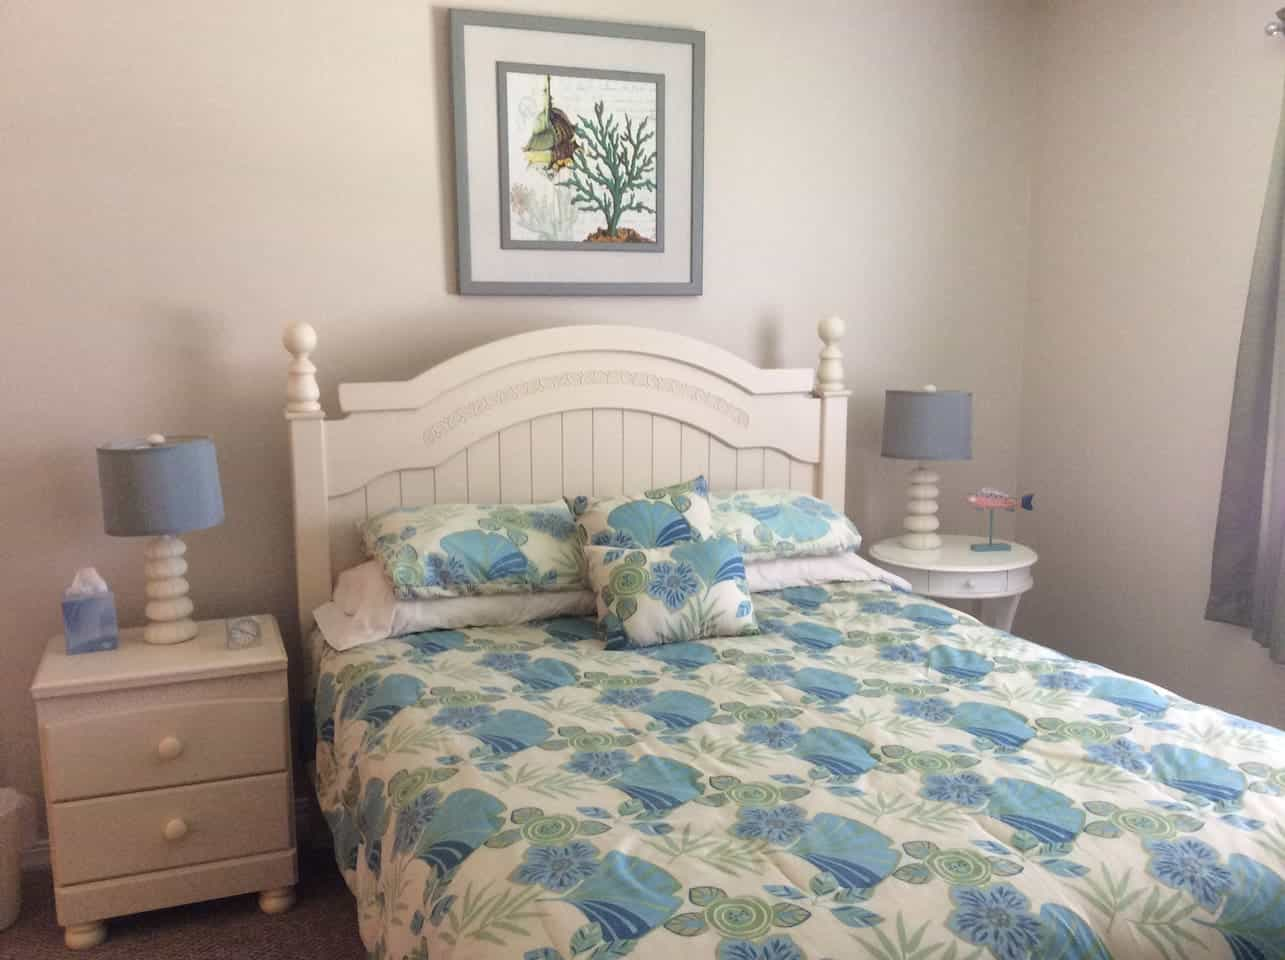 Image of Airbnb rental in St Augustine